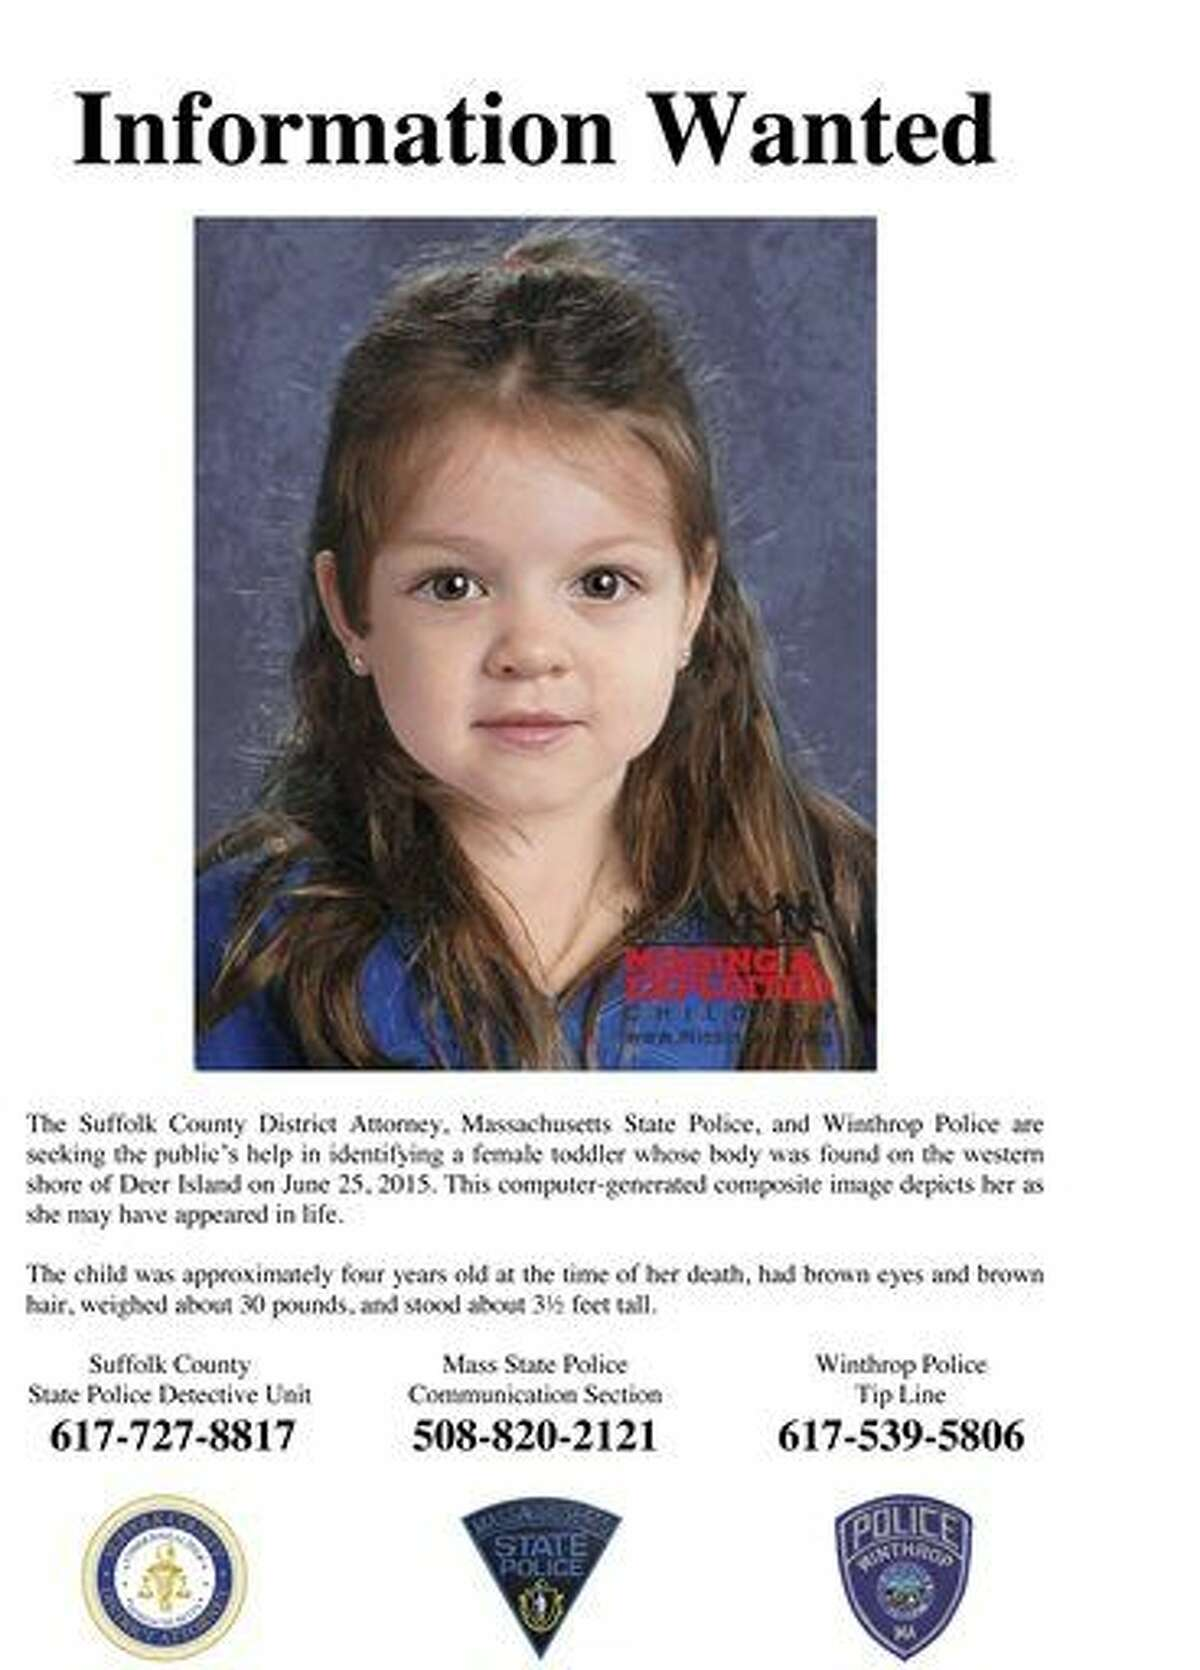 FILE - This undated flyer released Thursday, July 9, 2015, by the Suffolk County Massachusetts District Attorney includes a computer-generated composite image depicting the possible likeness of a young girl whose body was found on the shore of Deer Island in Boston Harbor on June 25, 2015. A law enforcement official told The Associated Press Friday, Sept. 18, 2015, that authorities have identified the little girl. (Suffolk County District Attorney via AP, File)